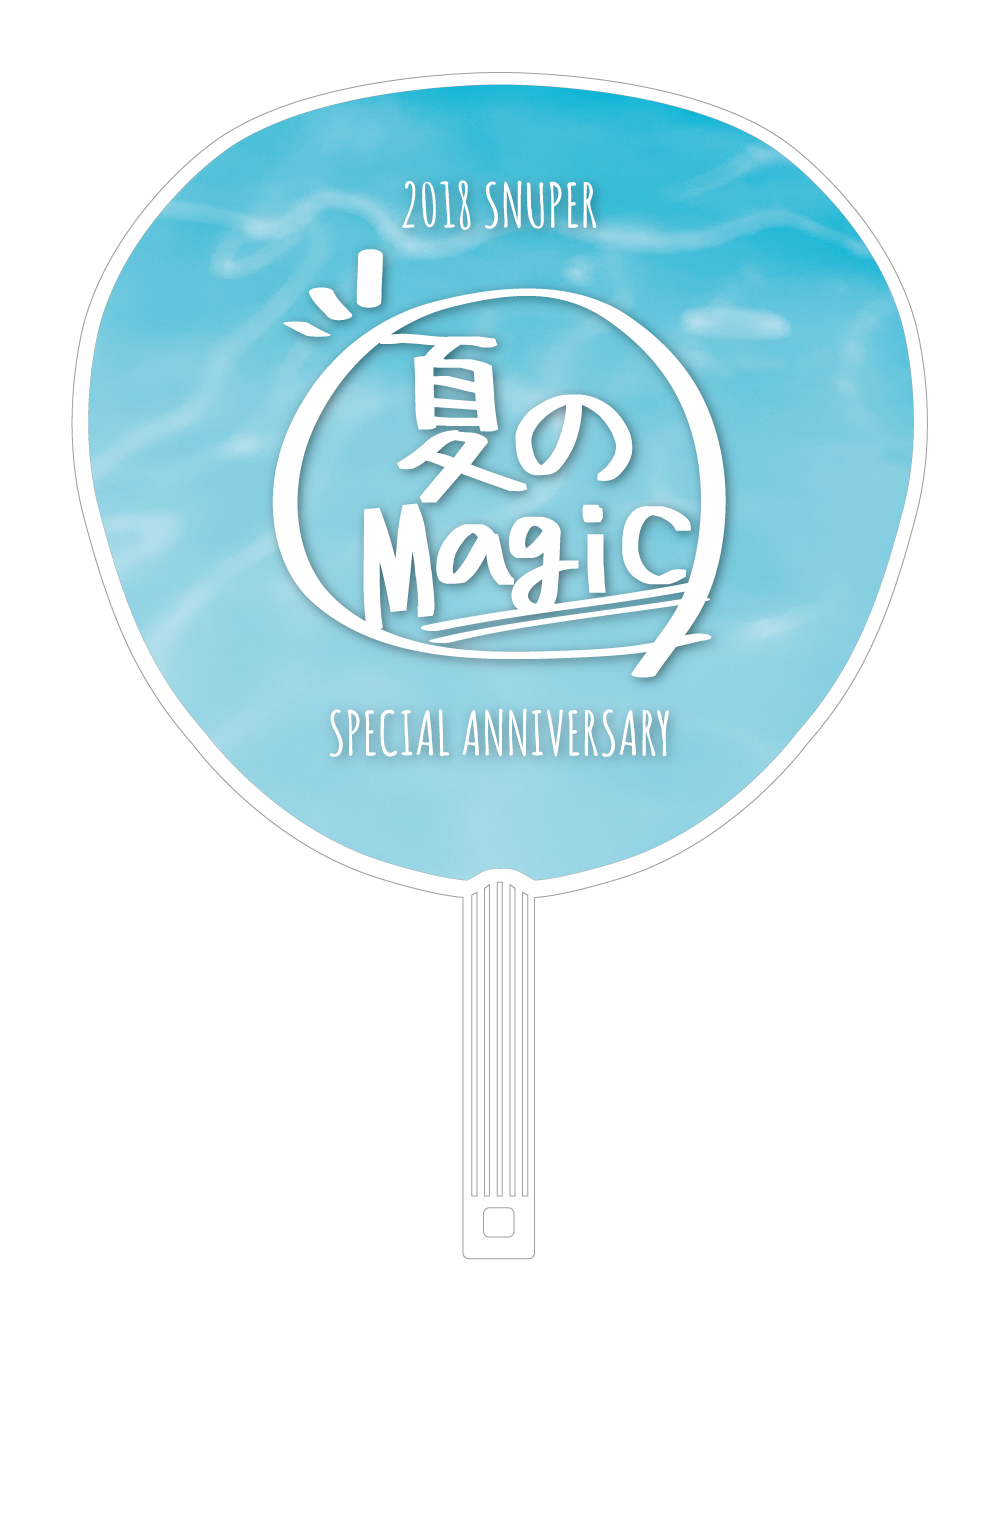 2018 SNUPER 夏のMAGIC SPECIAL ANIVERSARY BIGうちわ(全6種)